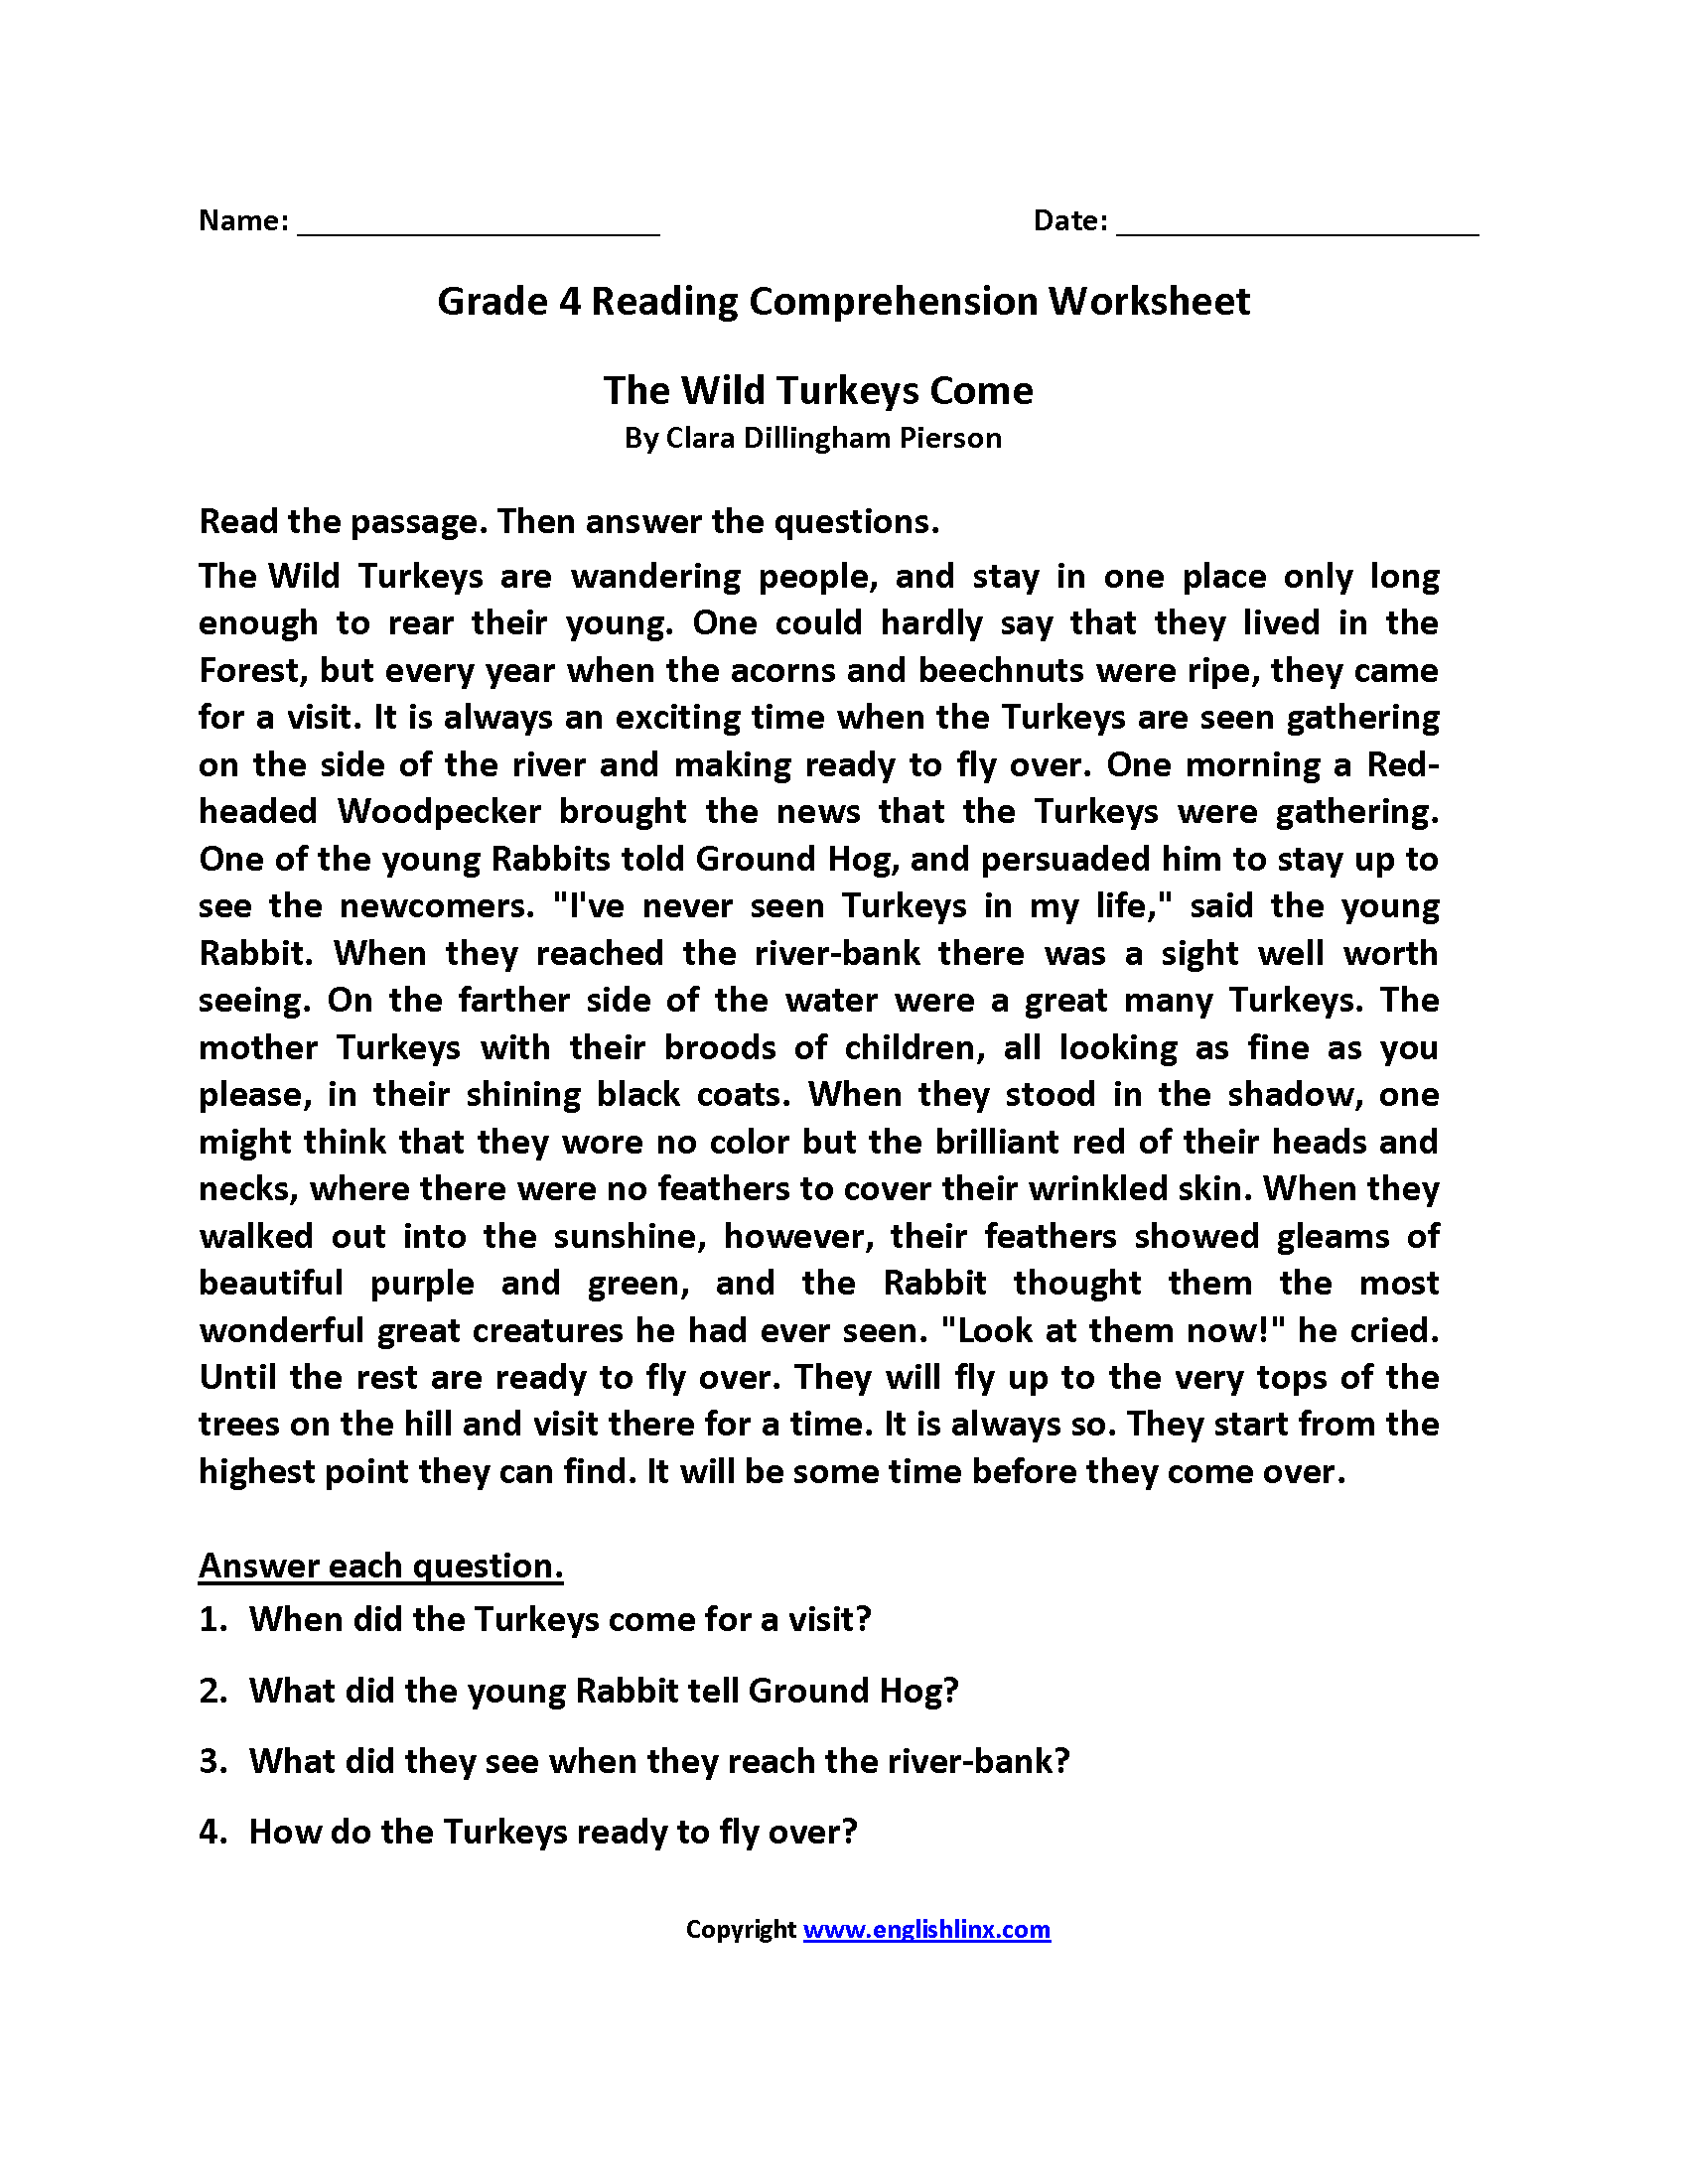 Worksheets Short Comprehension Passages For Grade 4